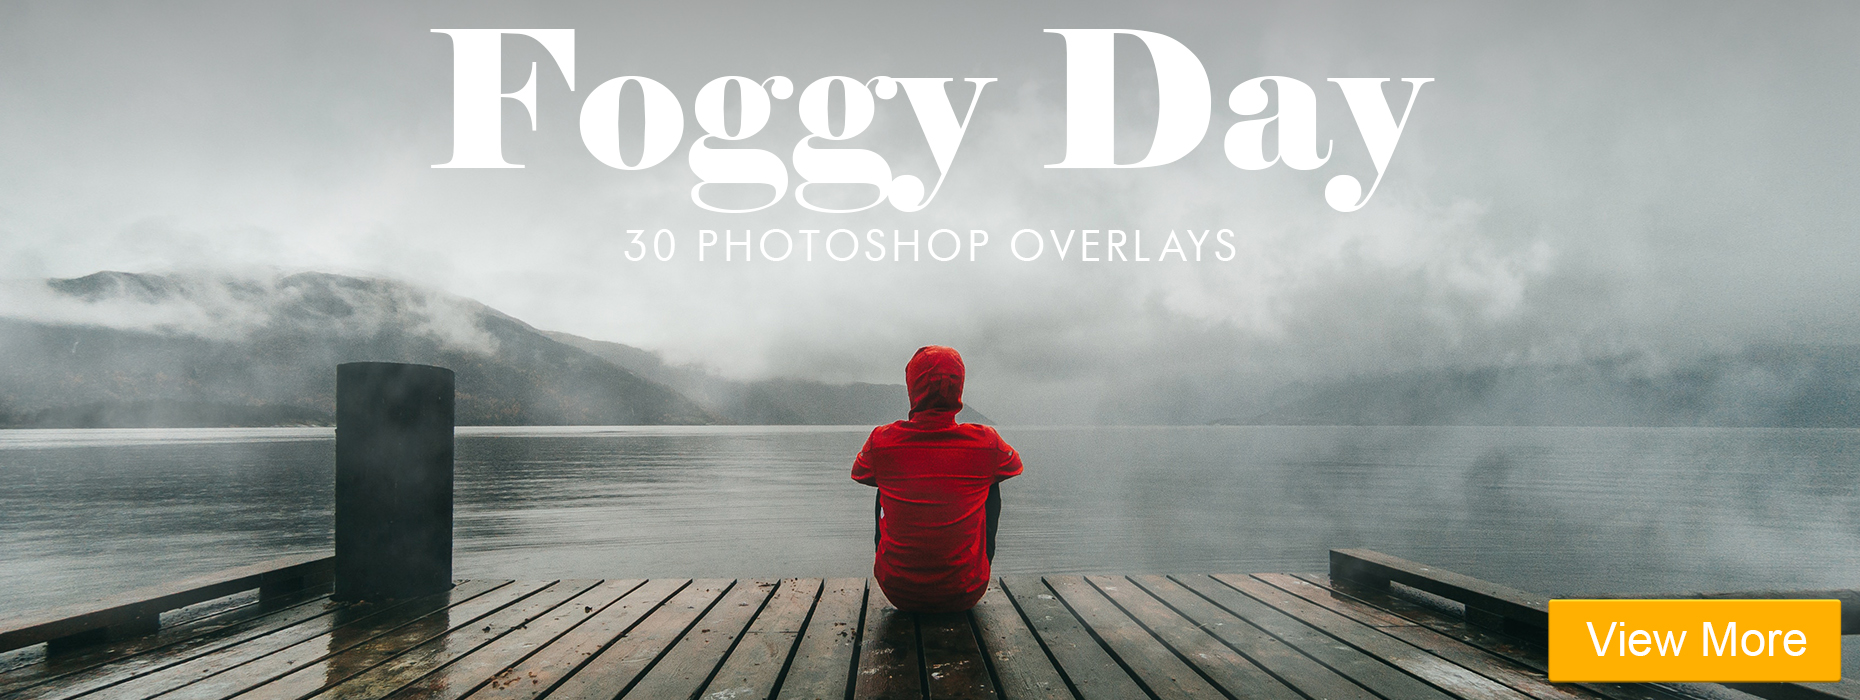 free fog overlays for photoshop foggy day photoshop overlays banner boy on lake